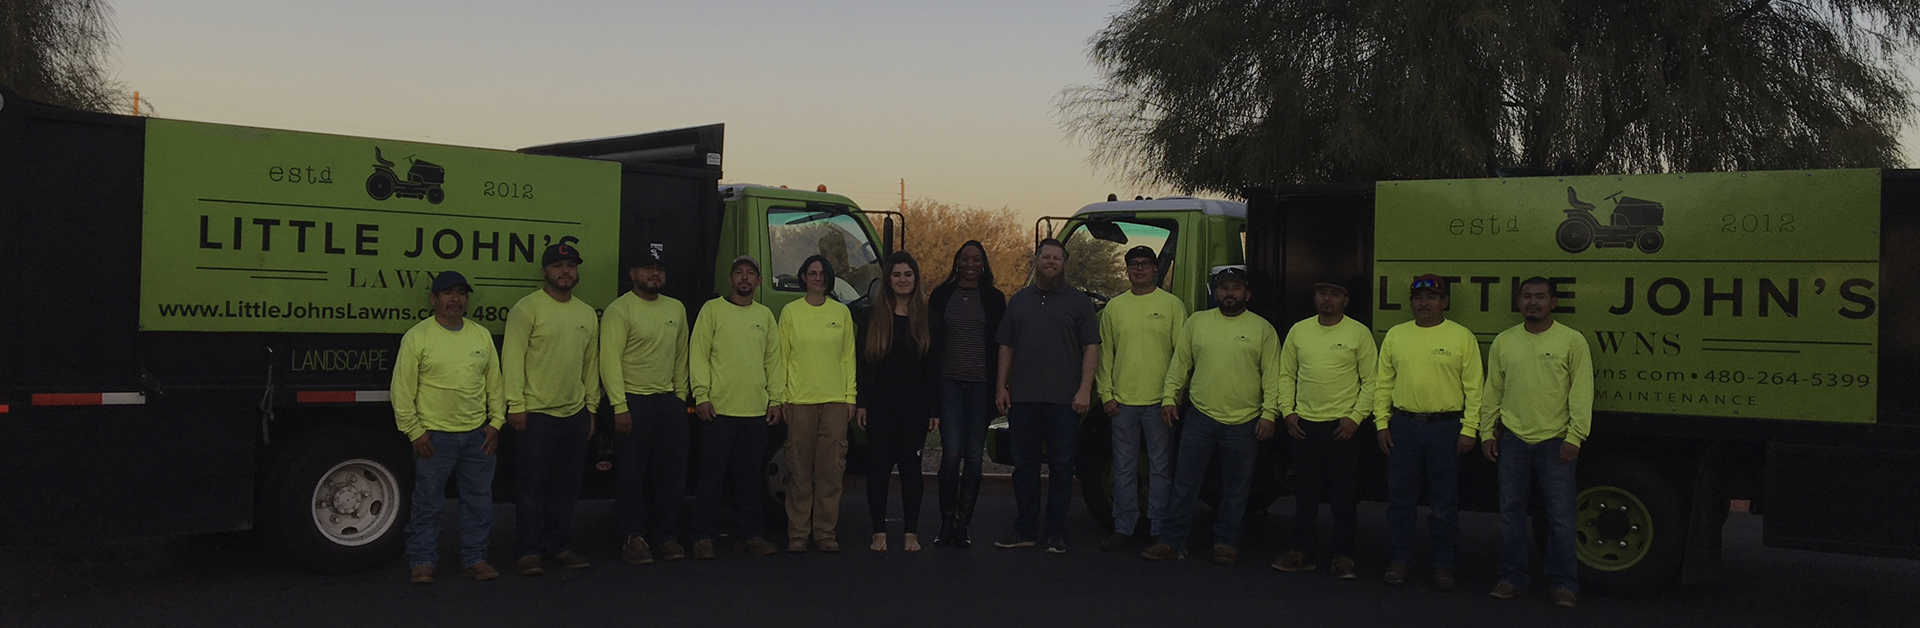 Employees of Little John's Lawns in Gilbert and Chandler Arizona